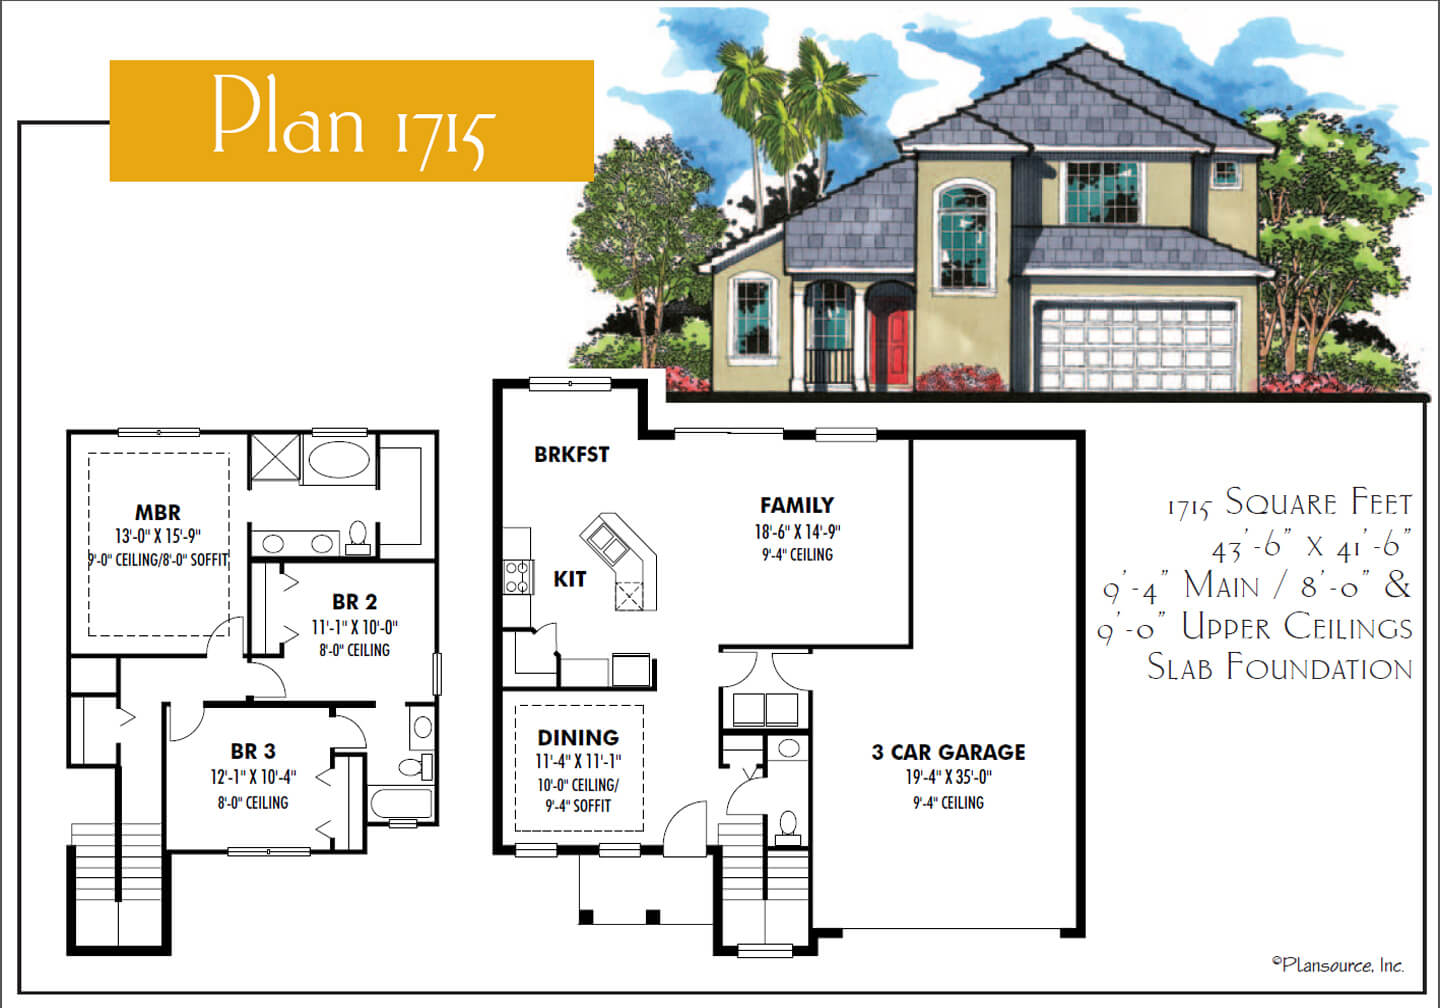 Floor Plans,1,001 SQ FT TO 2,000 SQ FT,1025